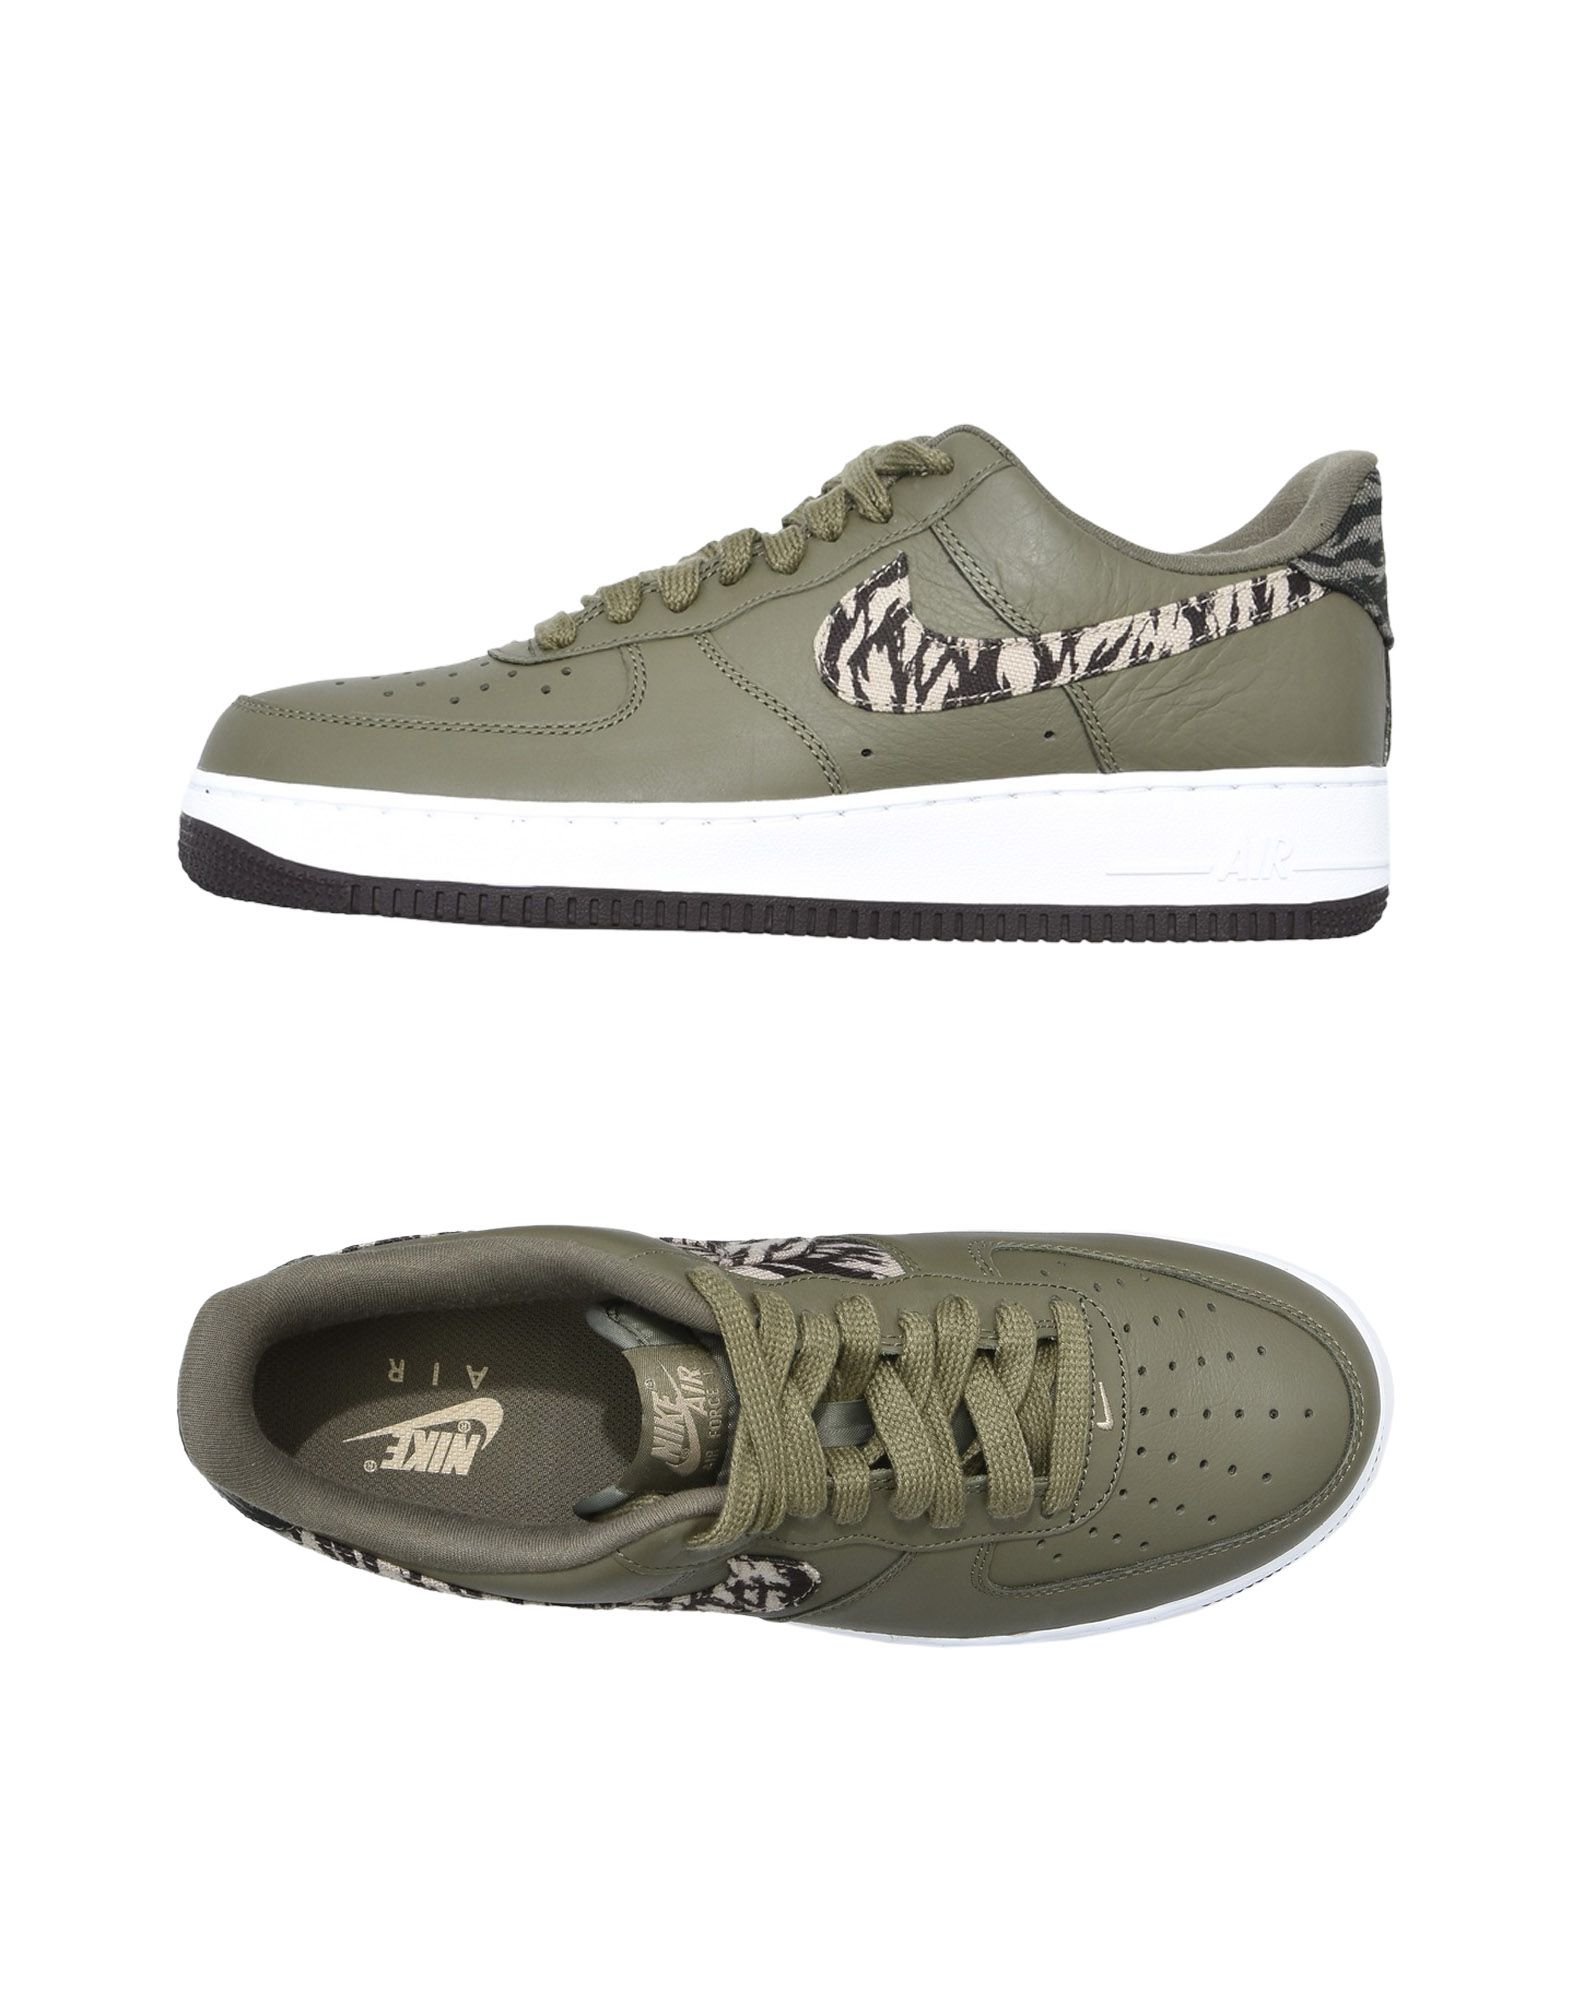 Sneakers Nike Air Force 1 Aop Prm - Uomo - 11498479DR